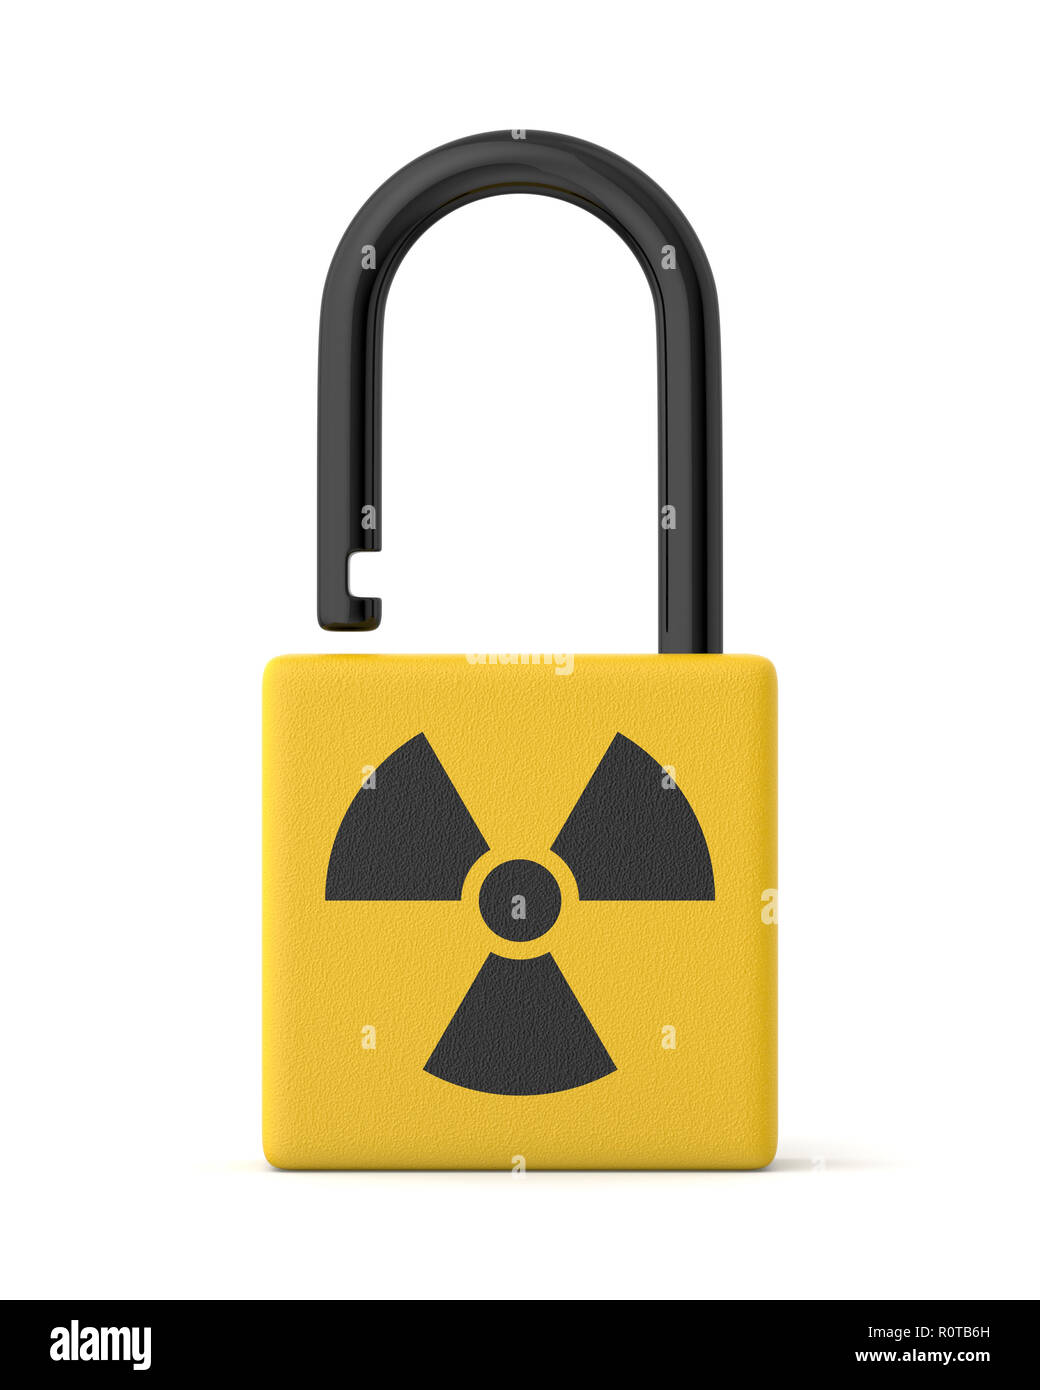 3d rendered yellow radiation padlock on a white background. - Stock Image